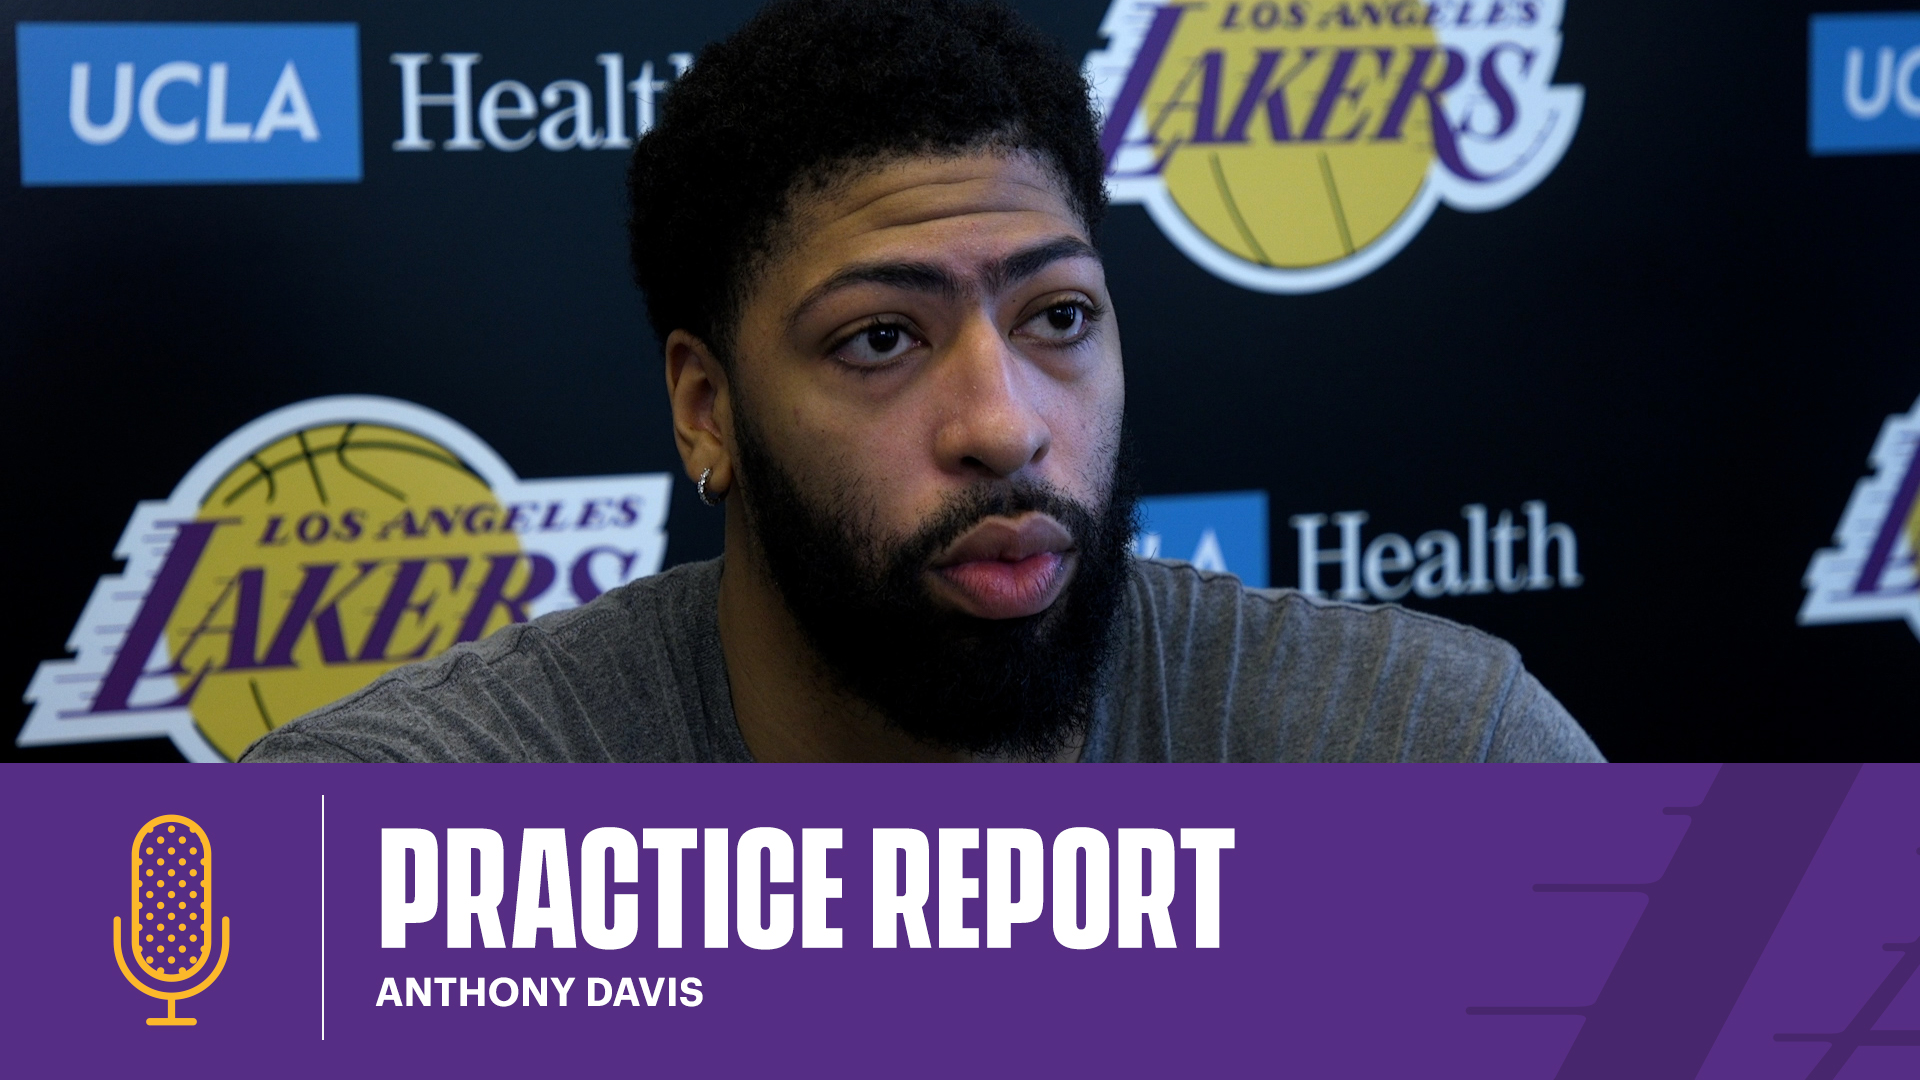 Practice Report: Anthony Davis (2/11/21)